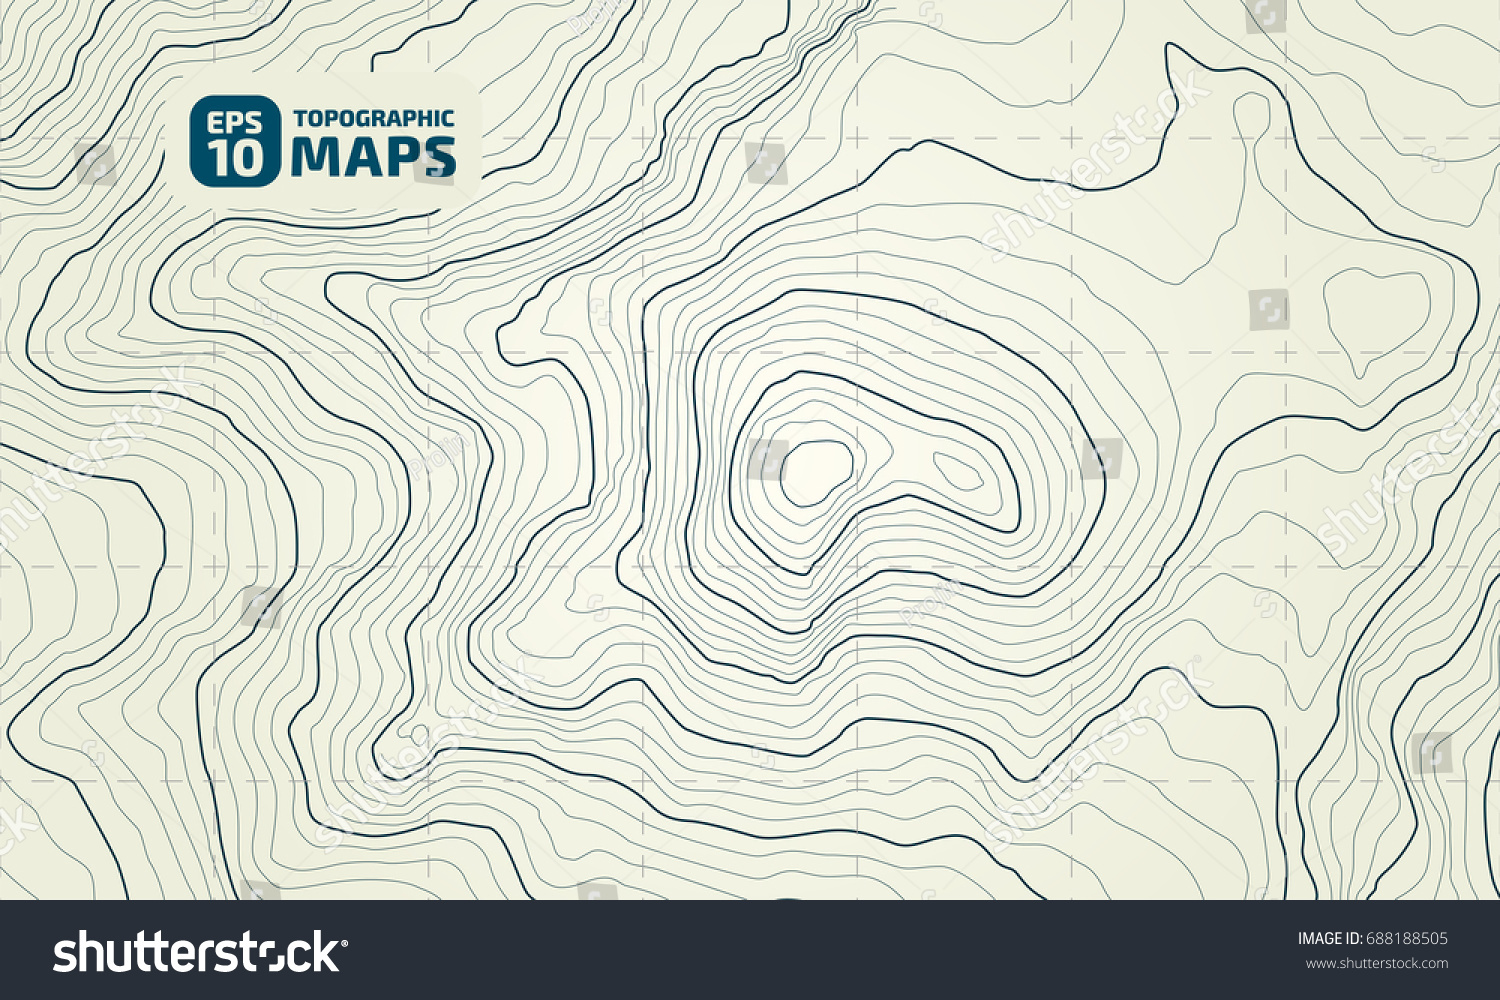 Design In Line : Stylized height topographic contour lines contours stock vector